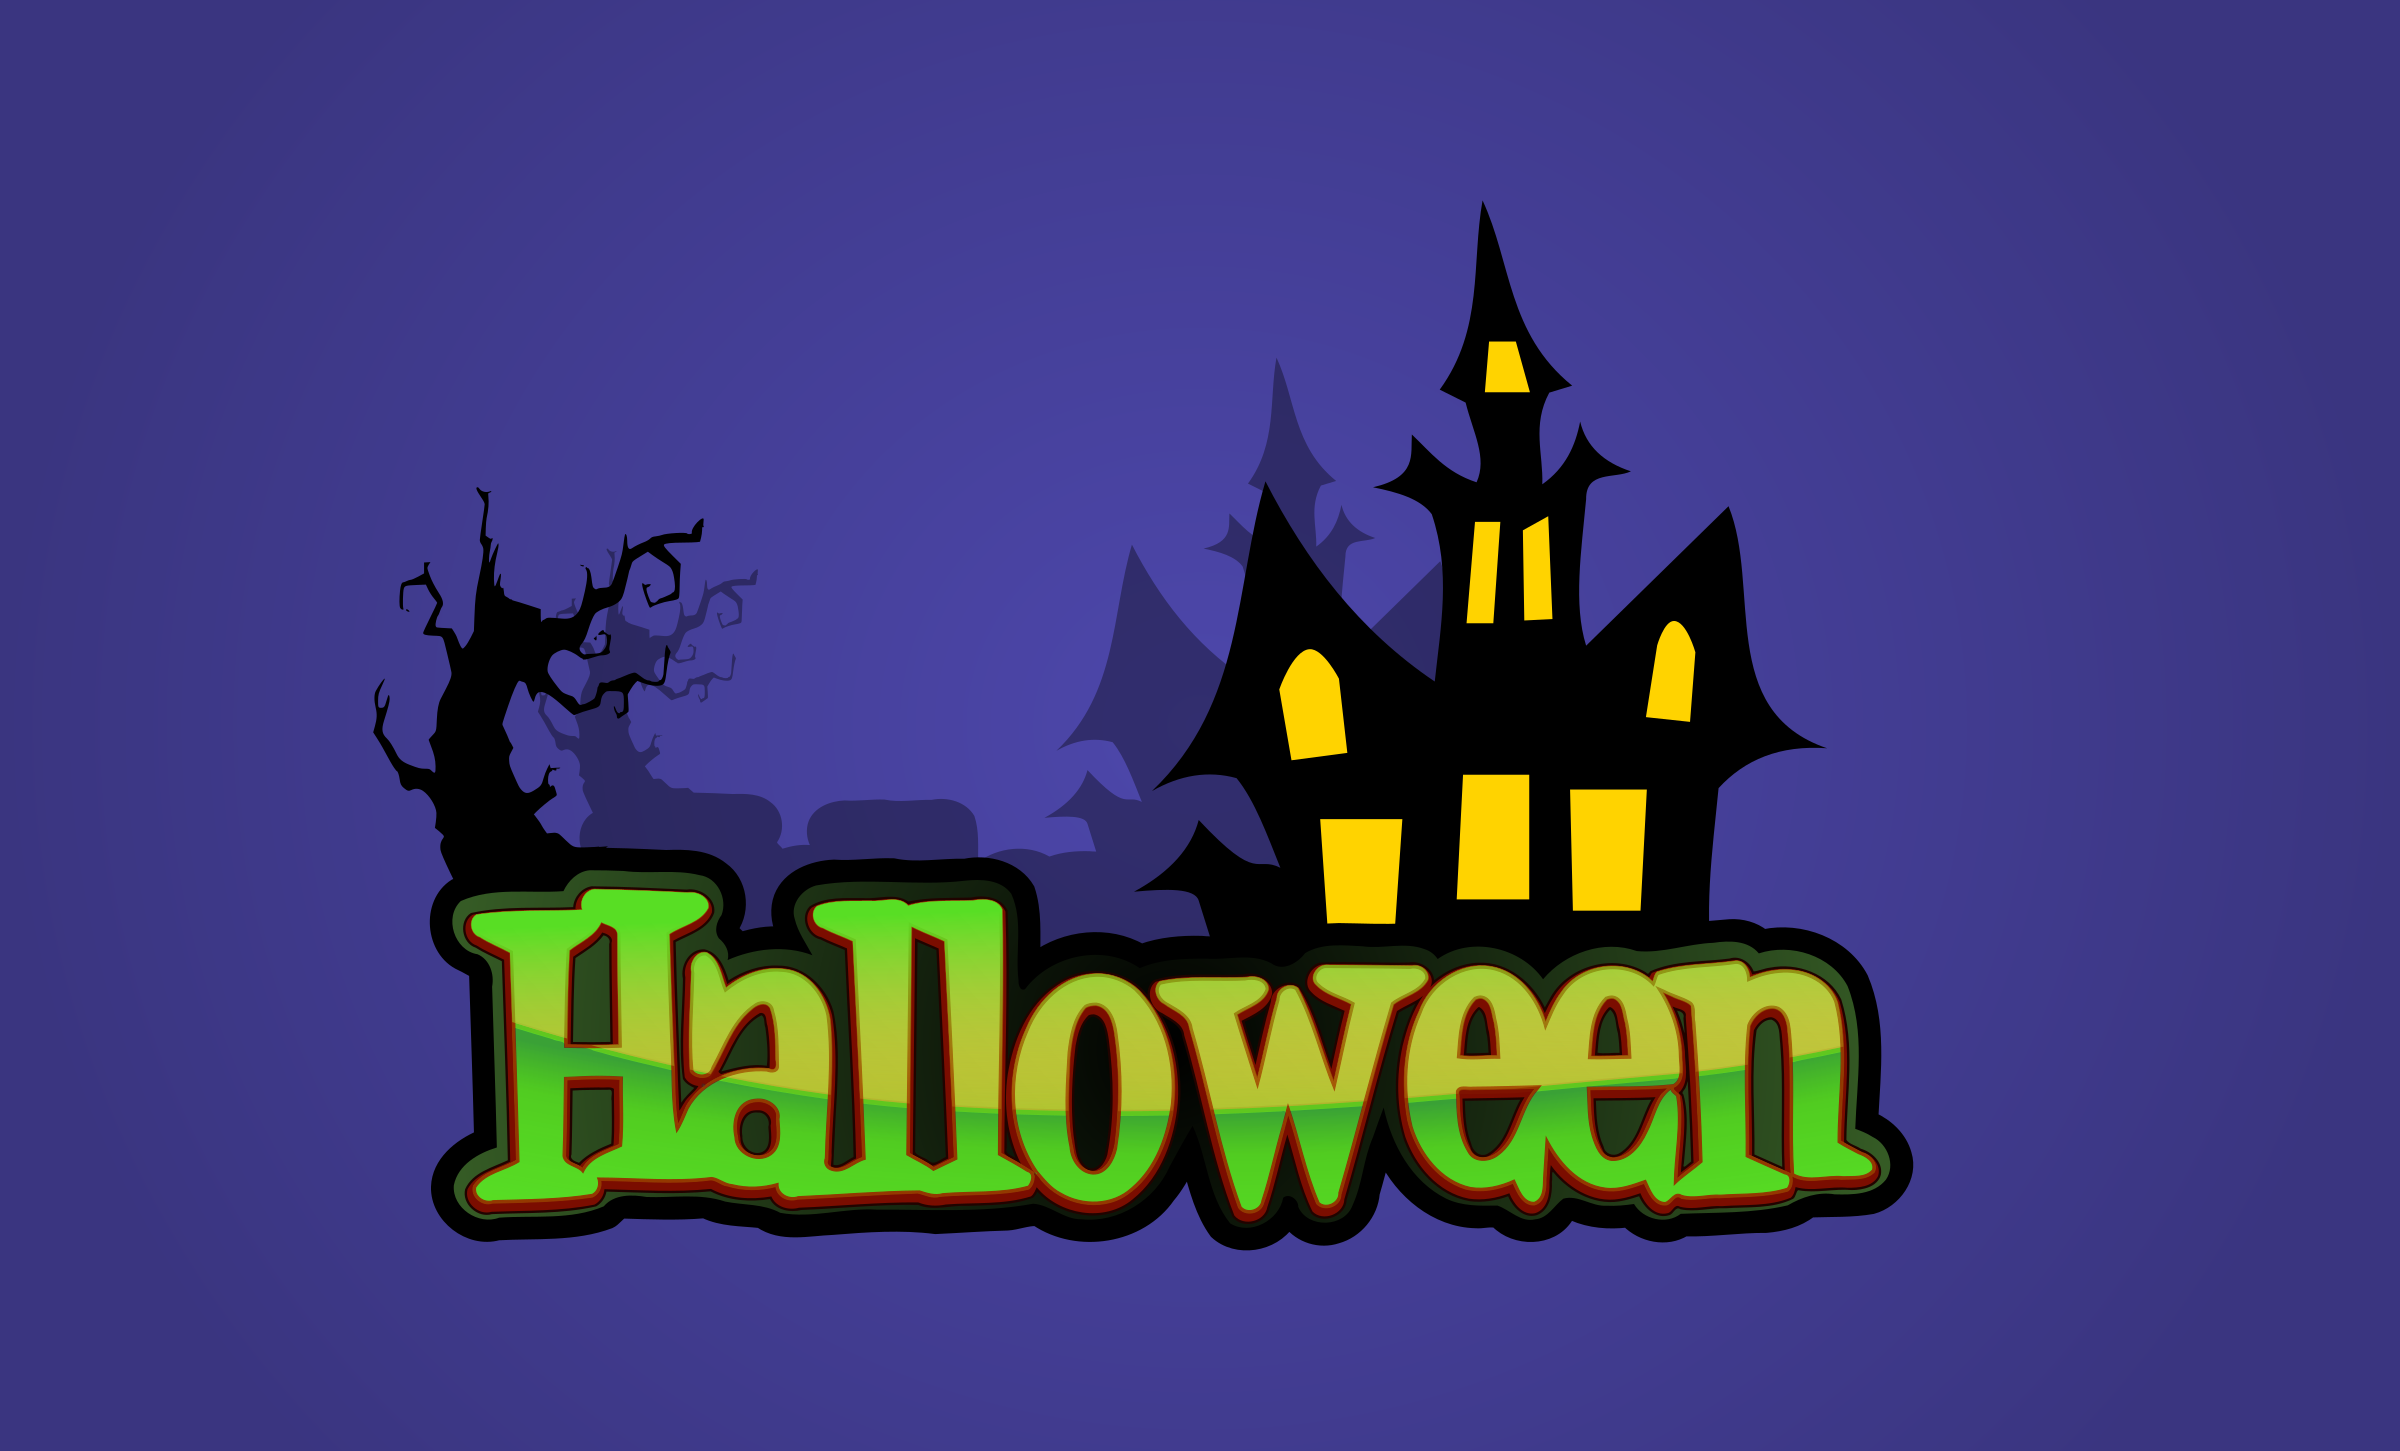 Halloween Logo - remix by Magnesus